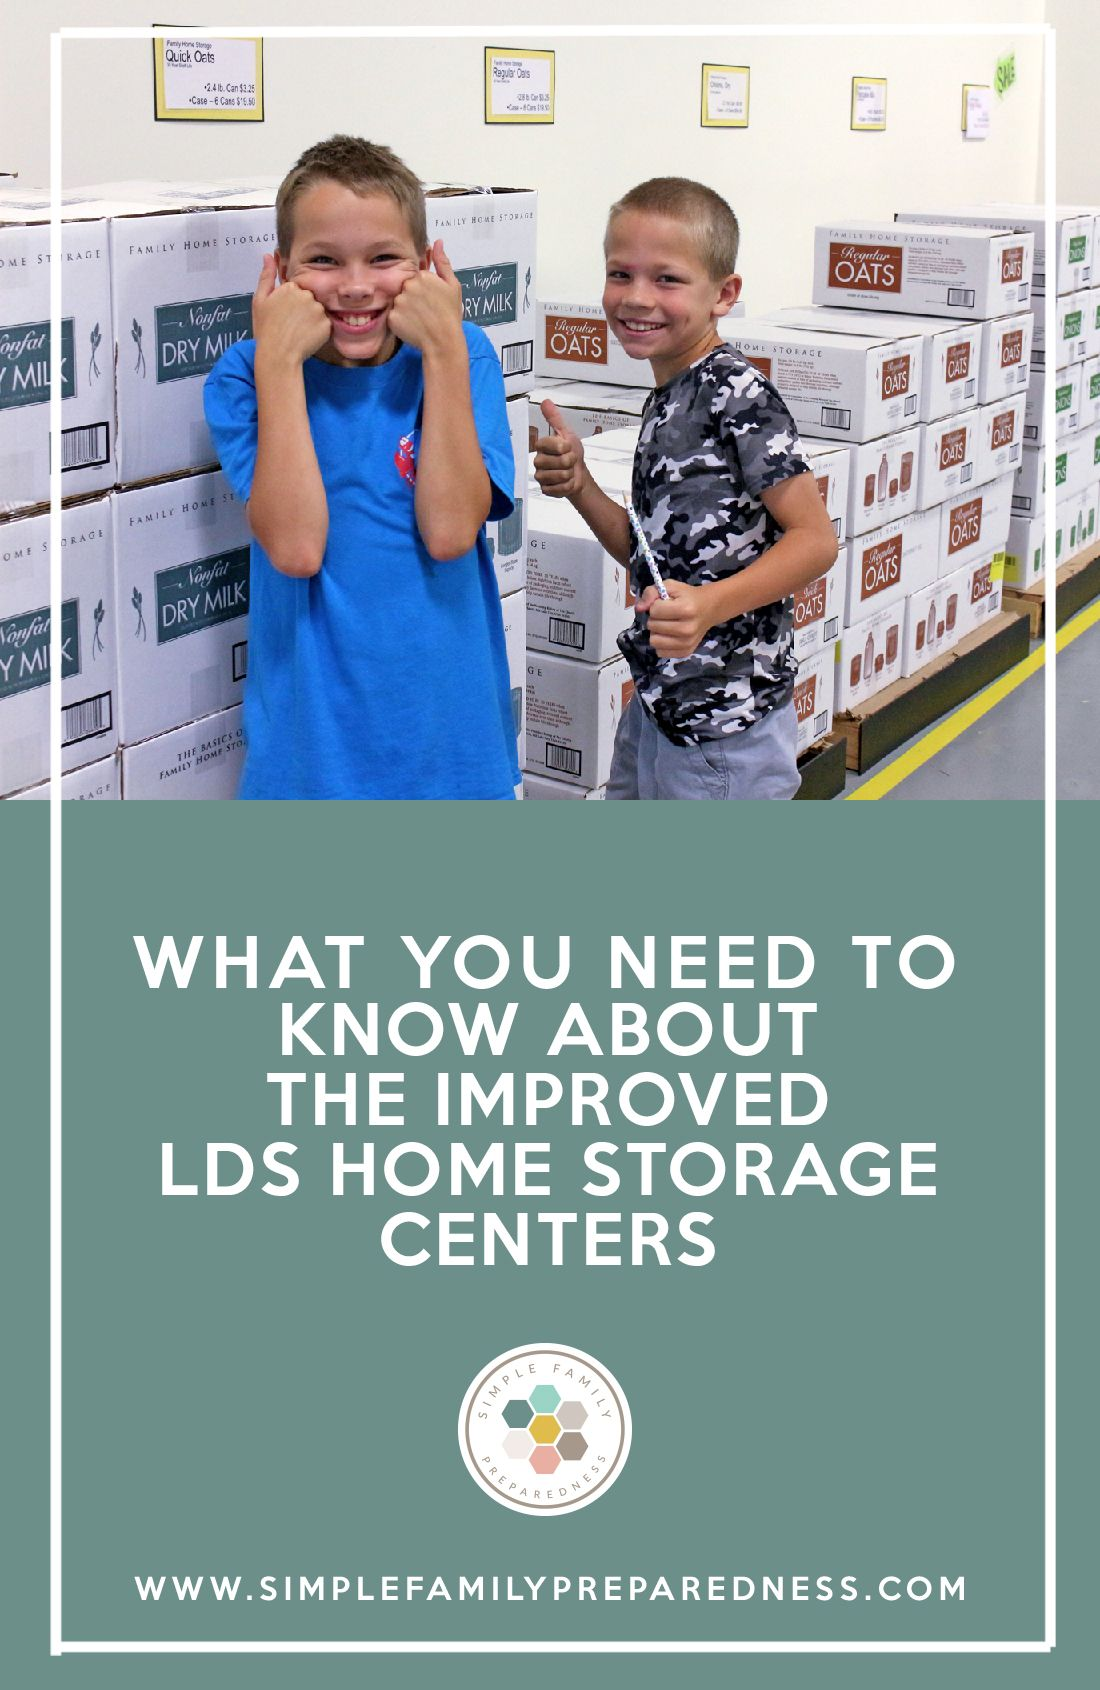 What You Need To Know About The Improved Lds Home Storage